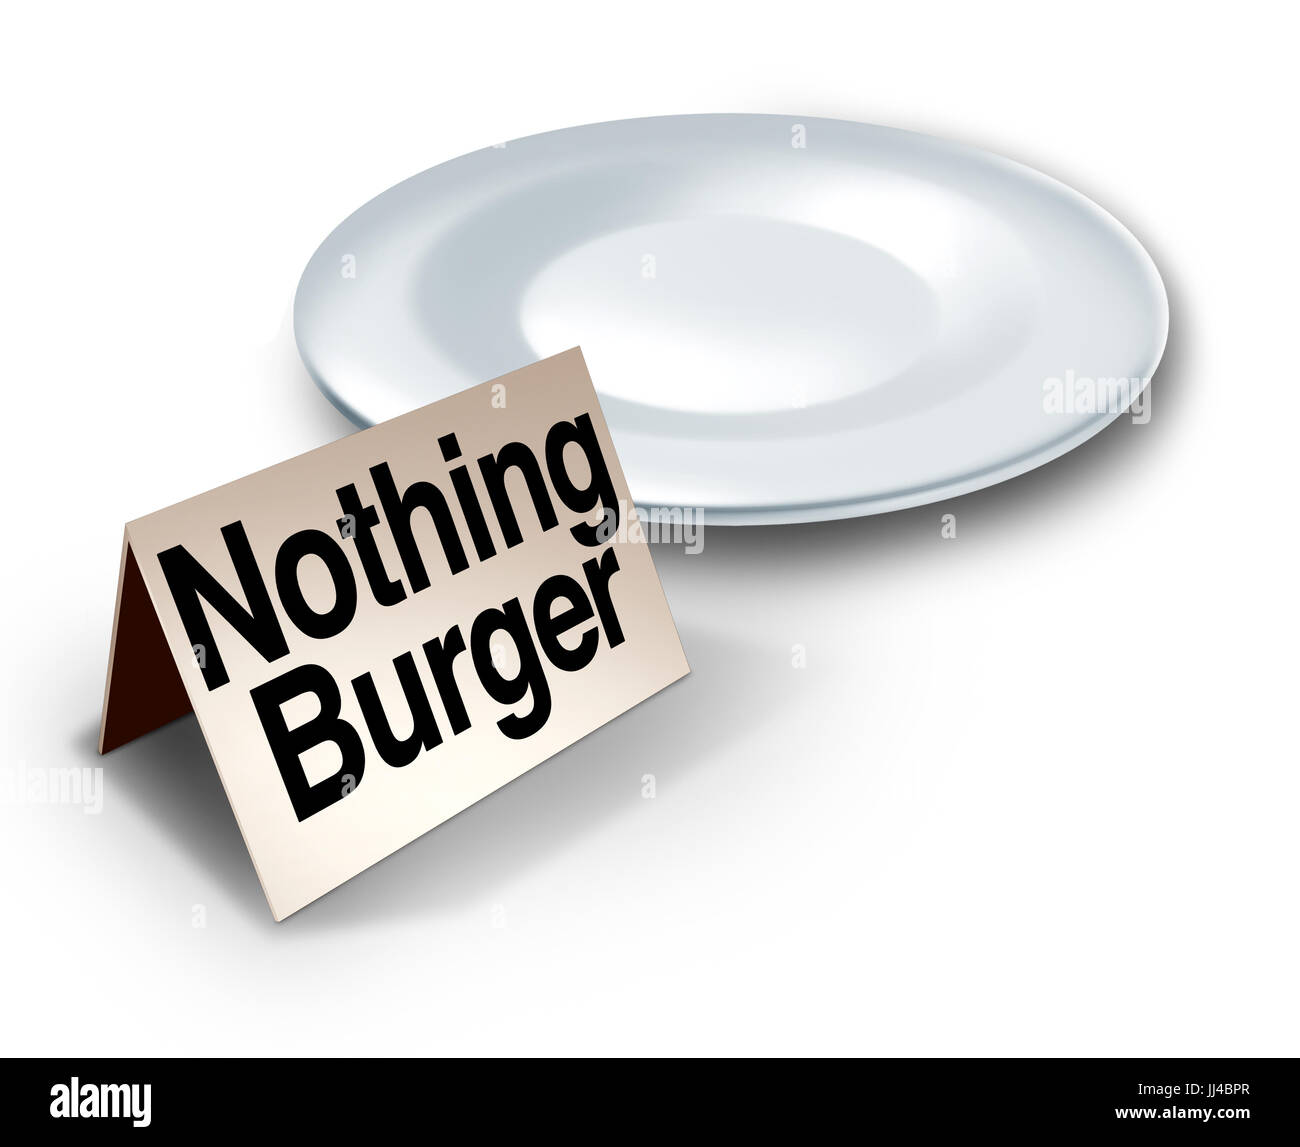 Nothing burger or nothingburger phrase concept as an empty plate with text on a label representing fake news investigation - Stock Image